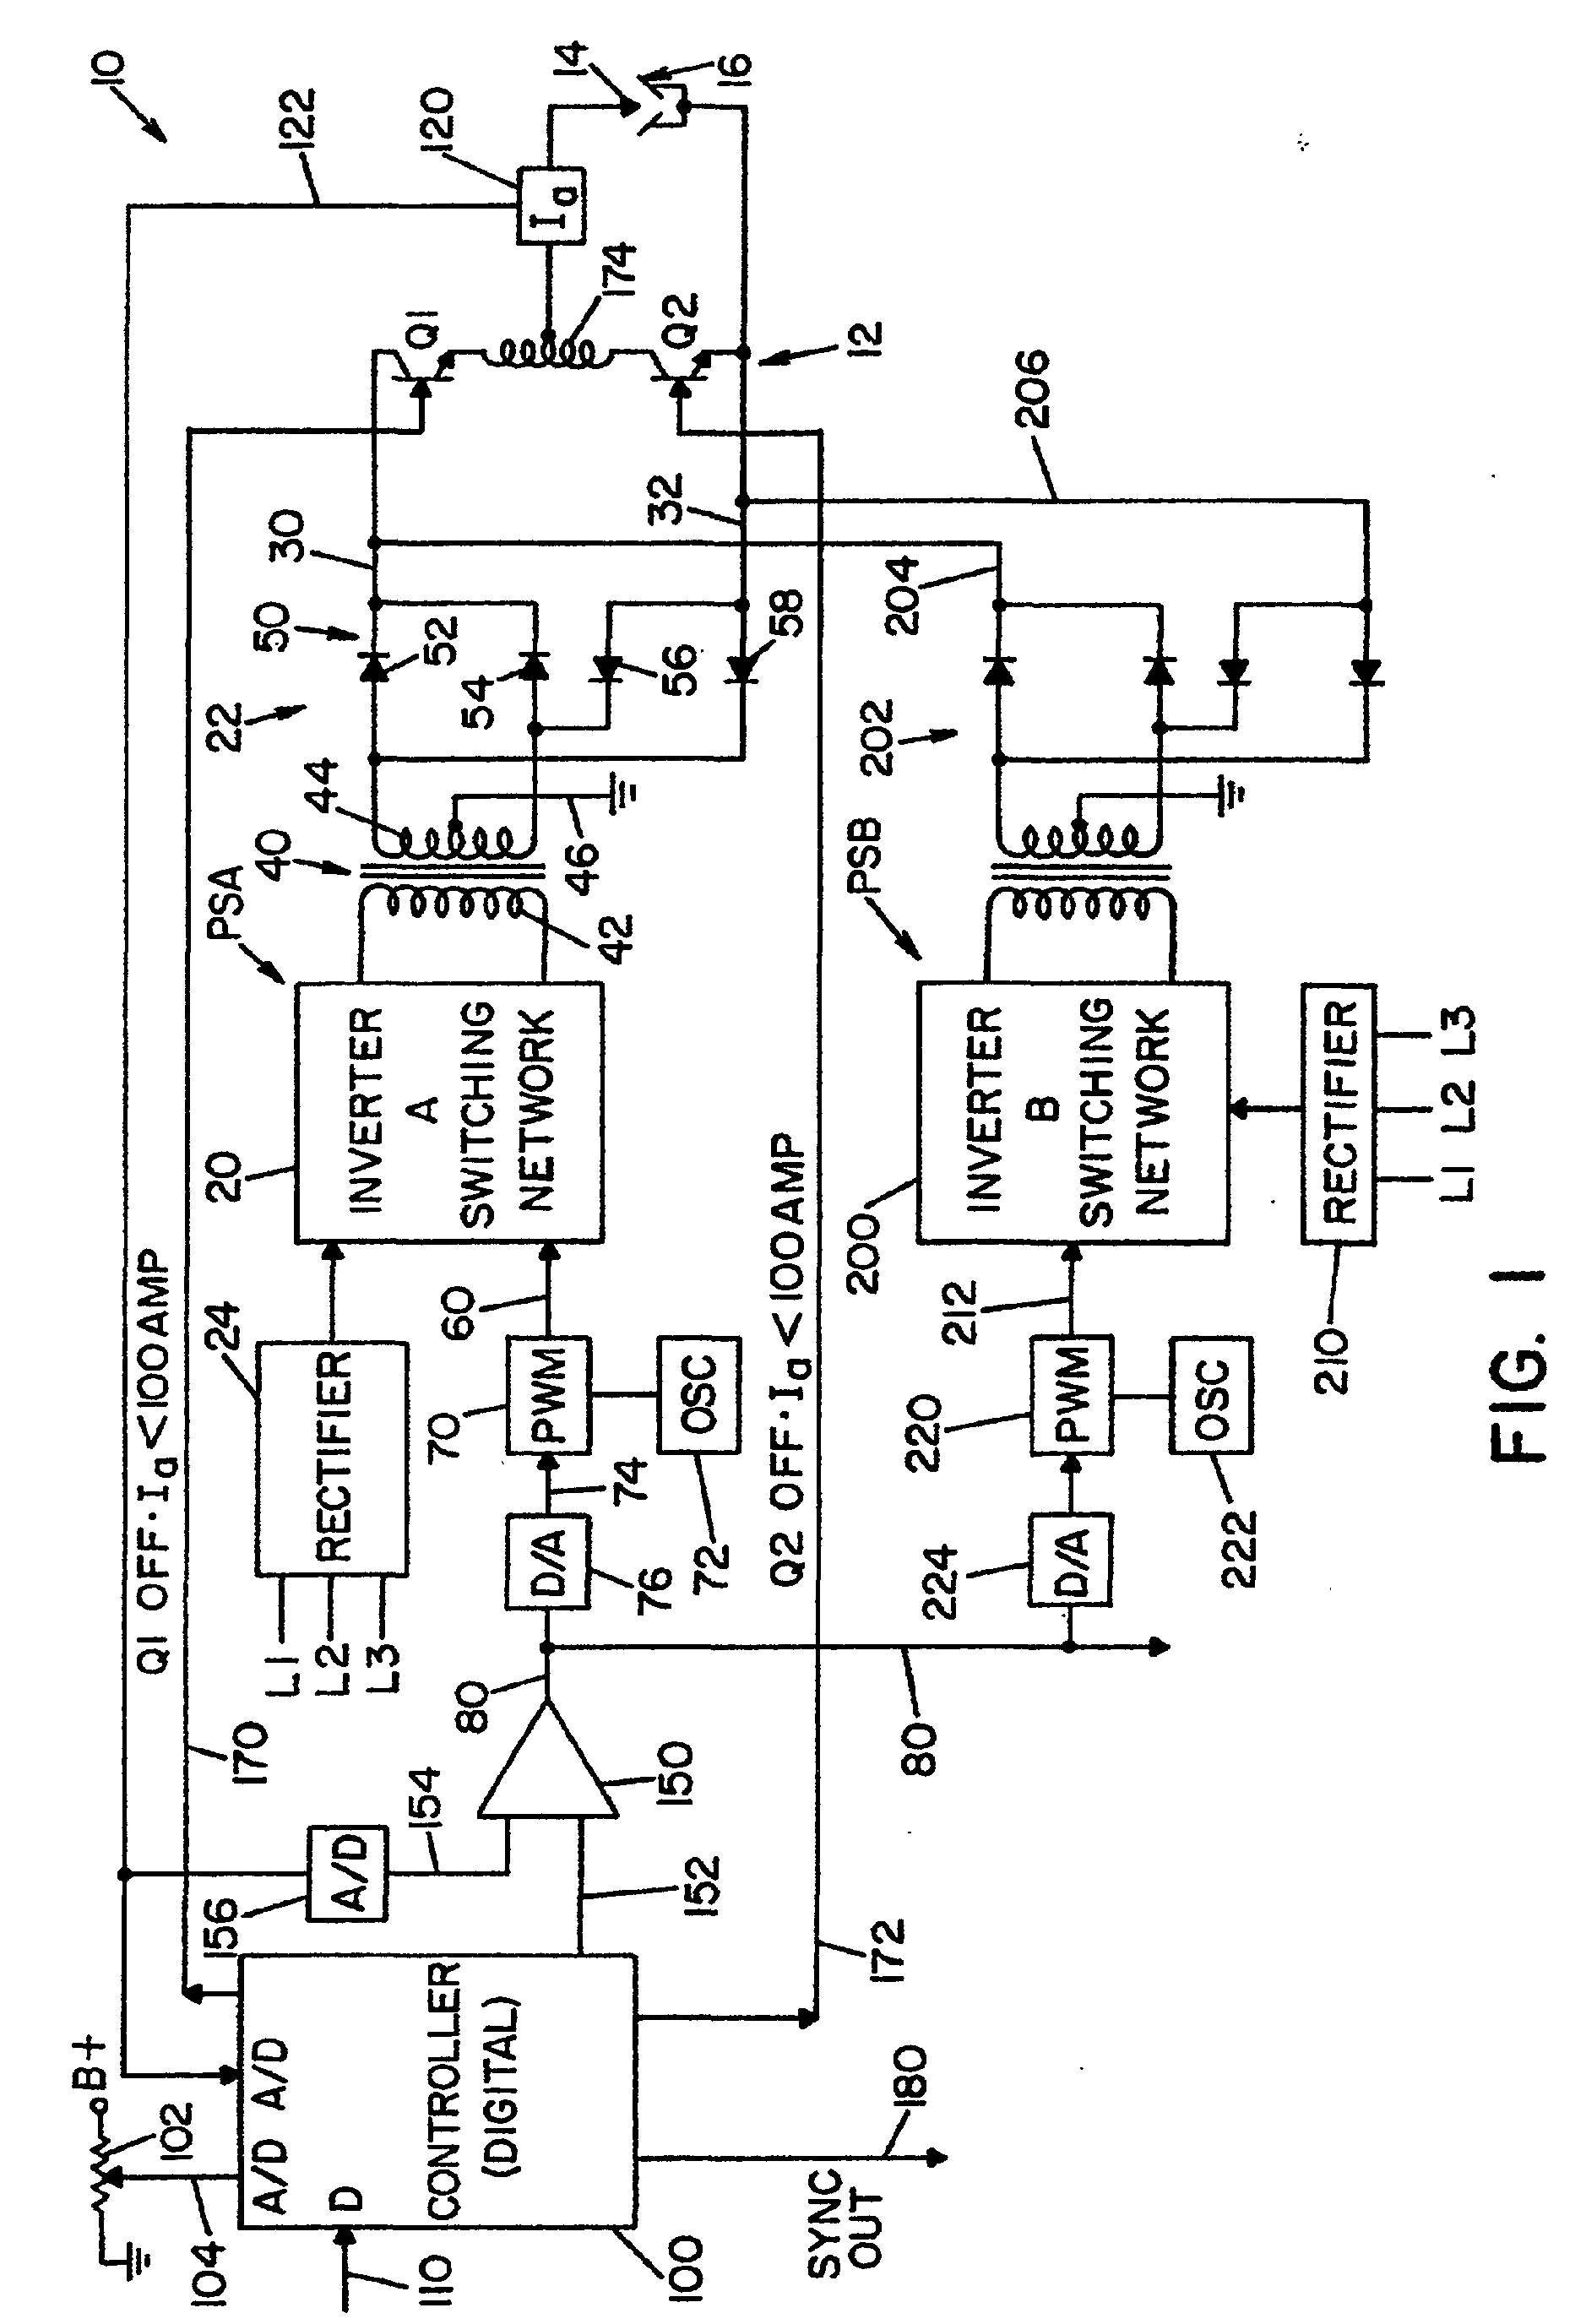 patent ep1086773b1 - electric arc welder with a plurality of power supplies